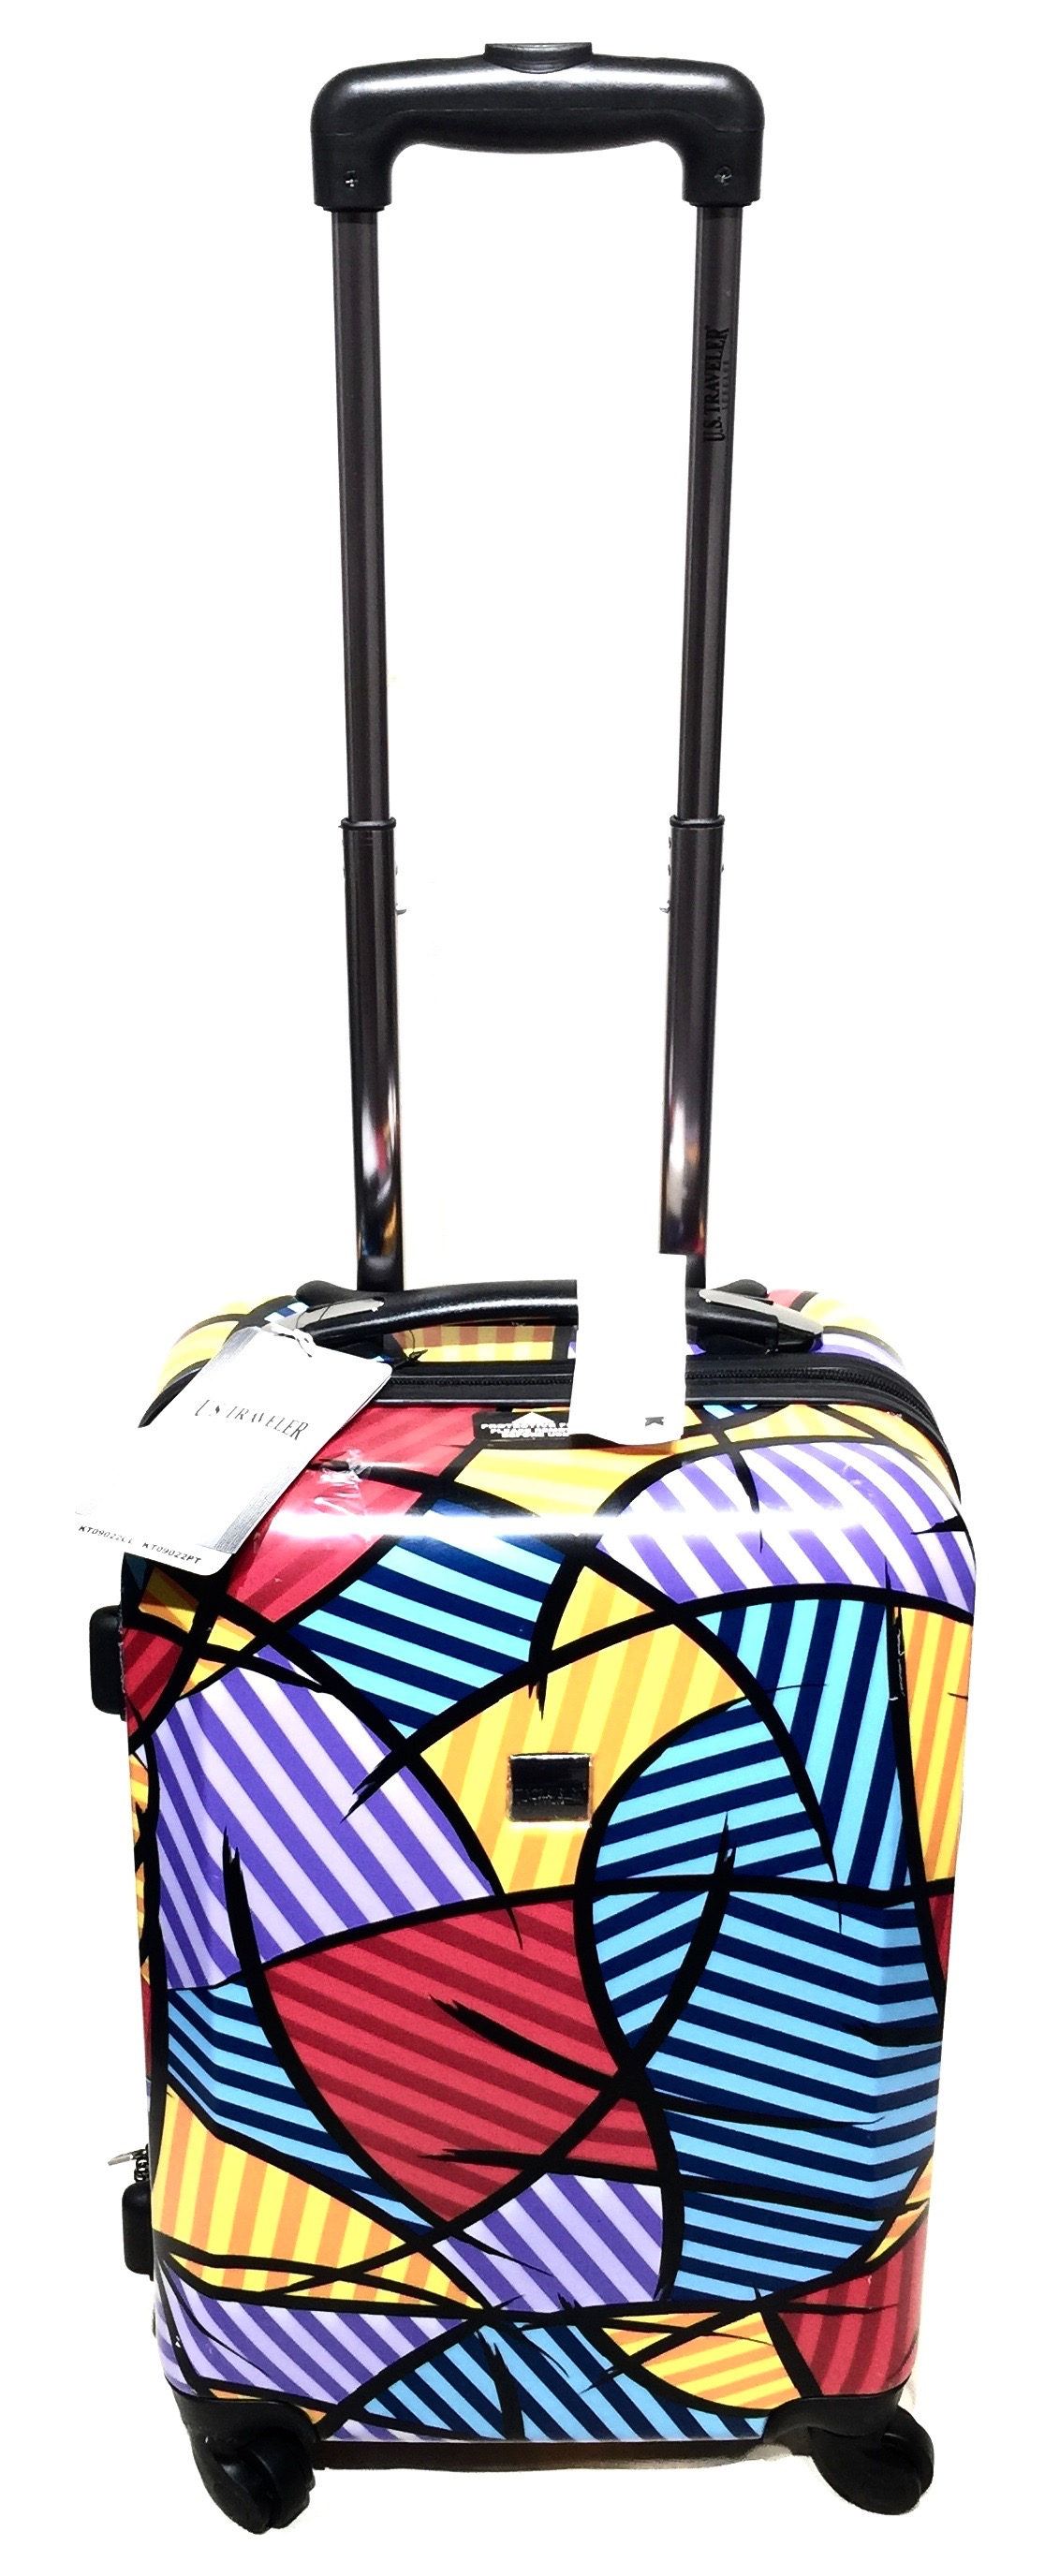 "22"" 4 Wheel Hardcover Luggage"